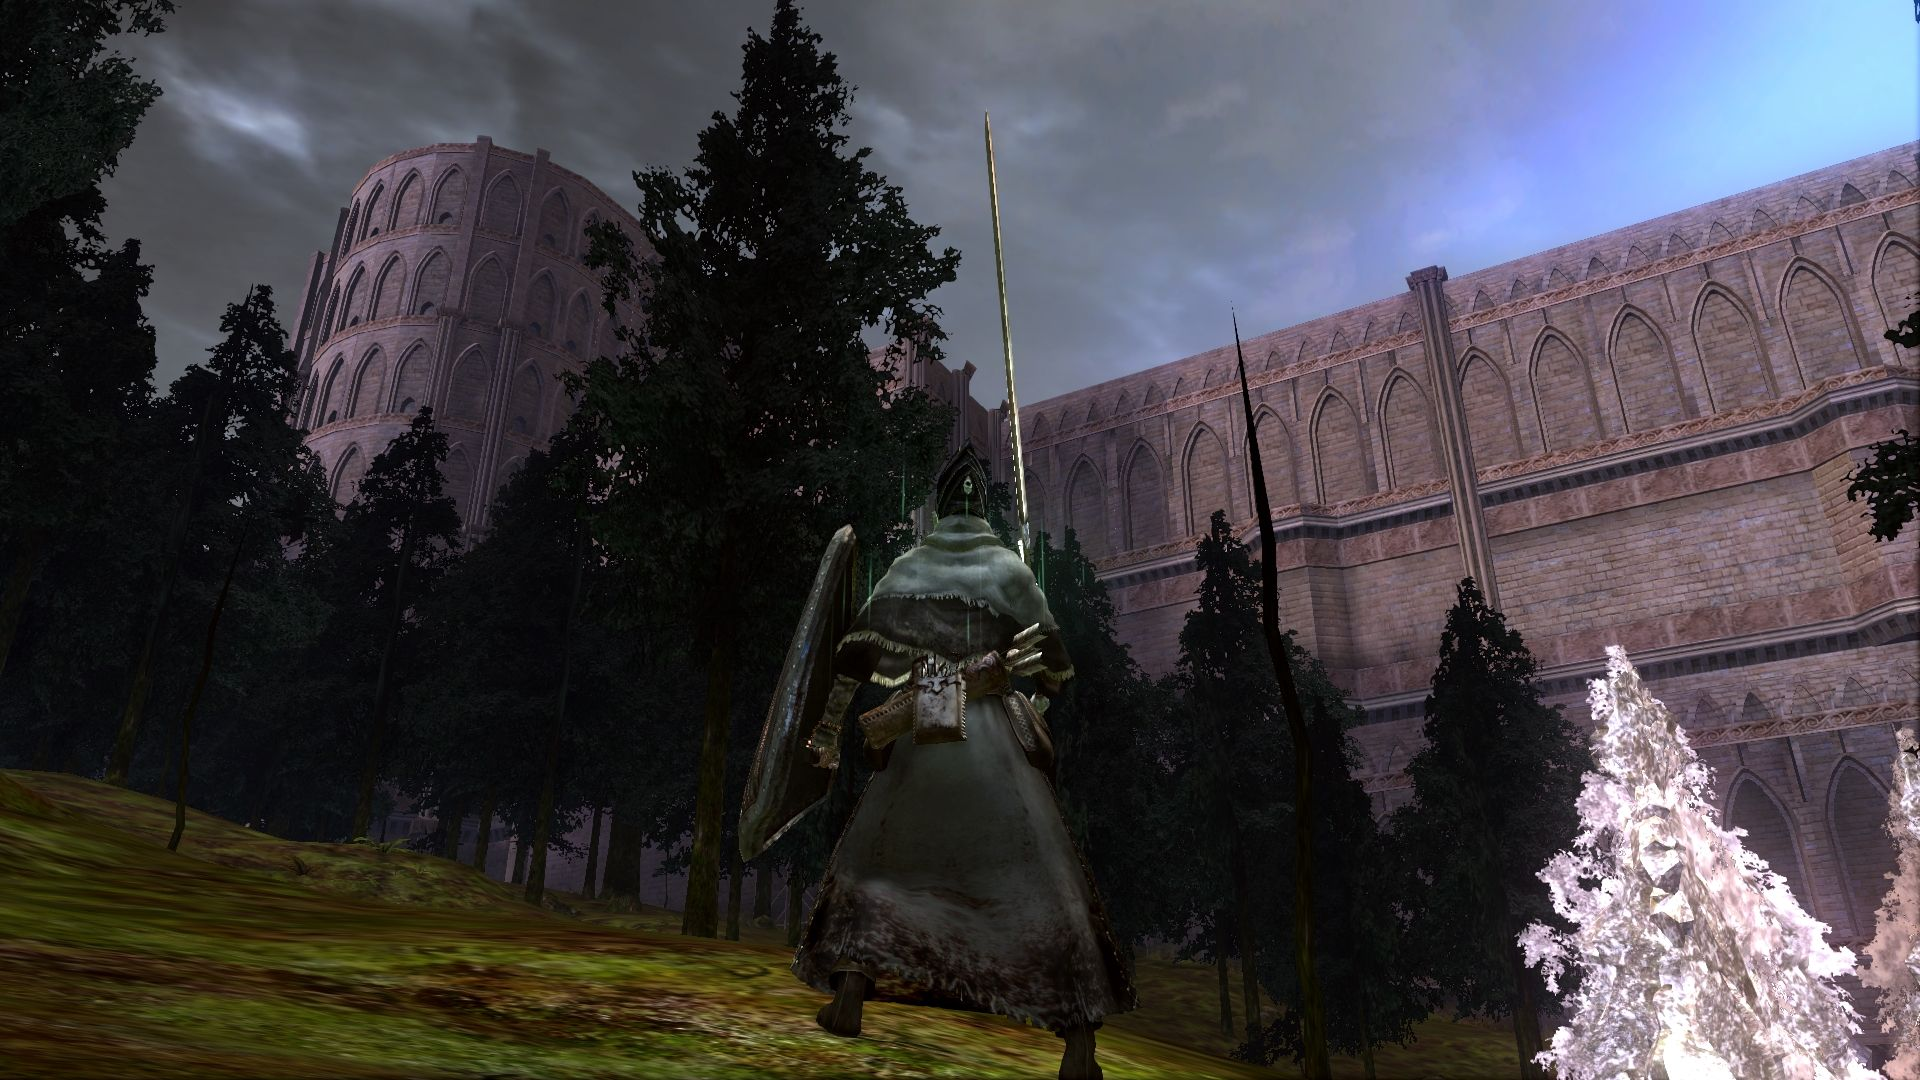 PC 版 DARK SOULS with ARTORIAS OF THE ABYSS EDITION(Prepare To Die Edition) DSfix スクリーンショット、エリア 公爵の書庫(The Dukes Archives) 庭